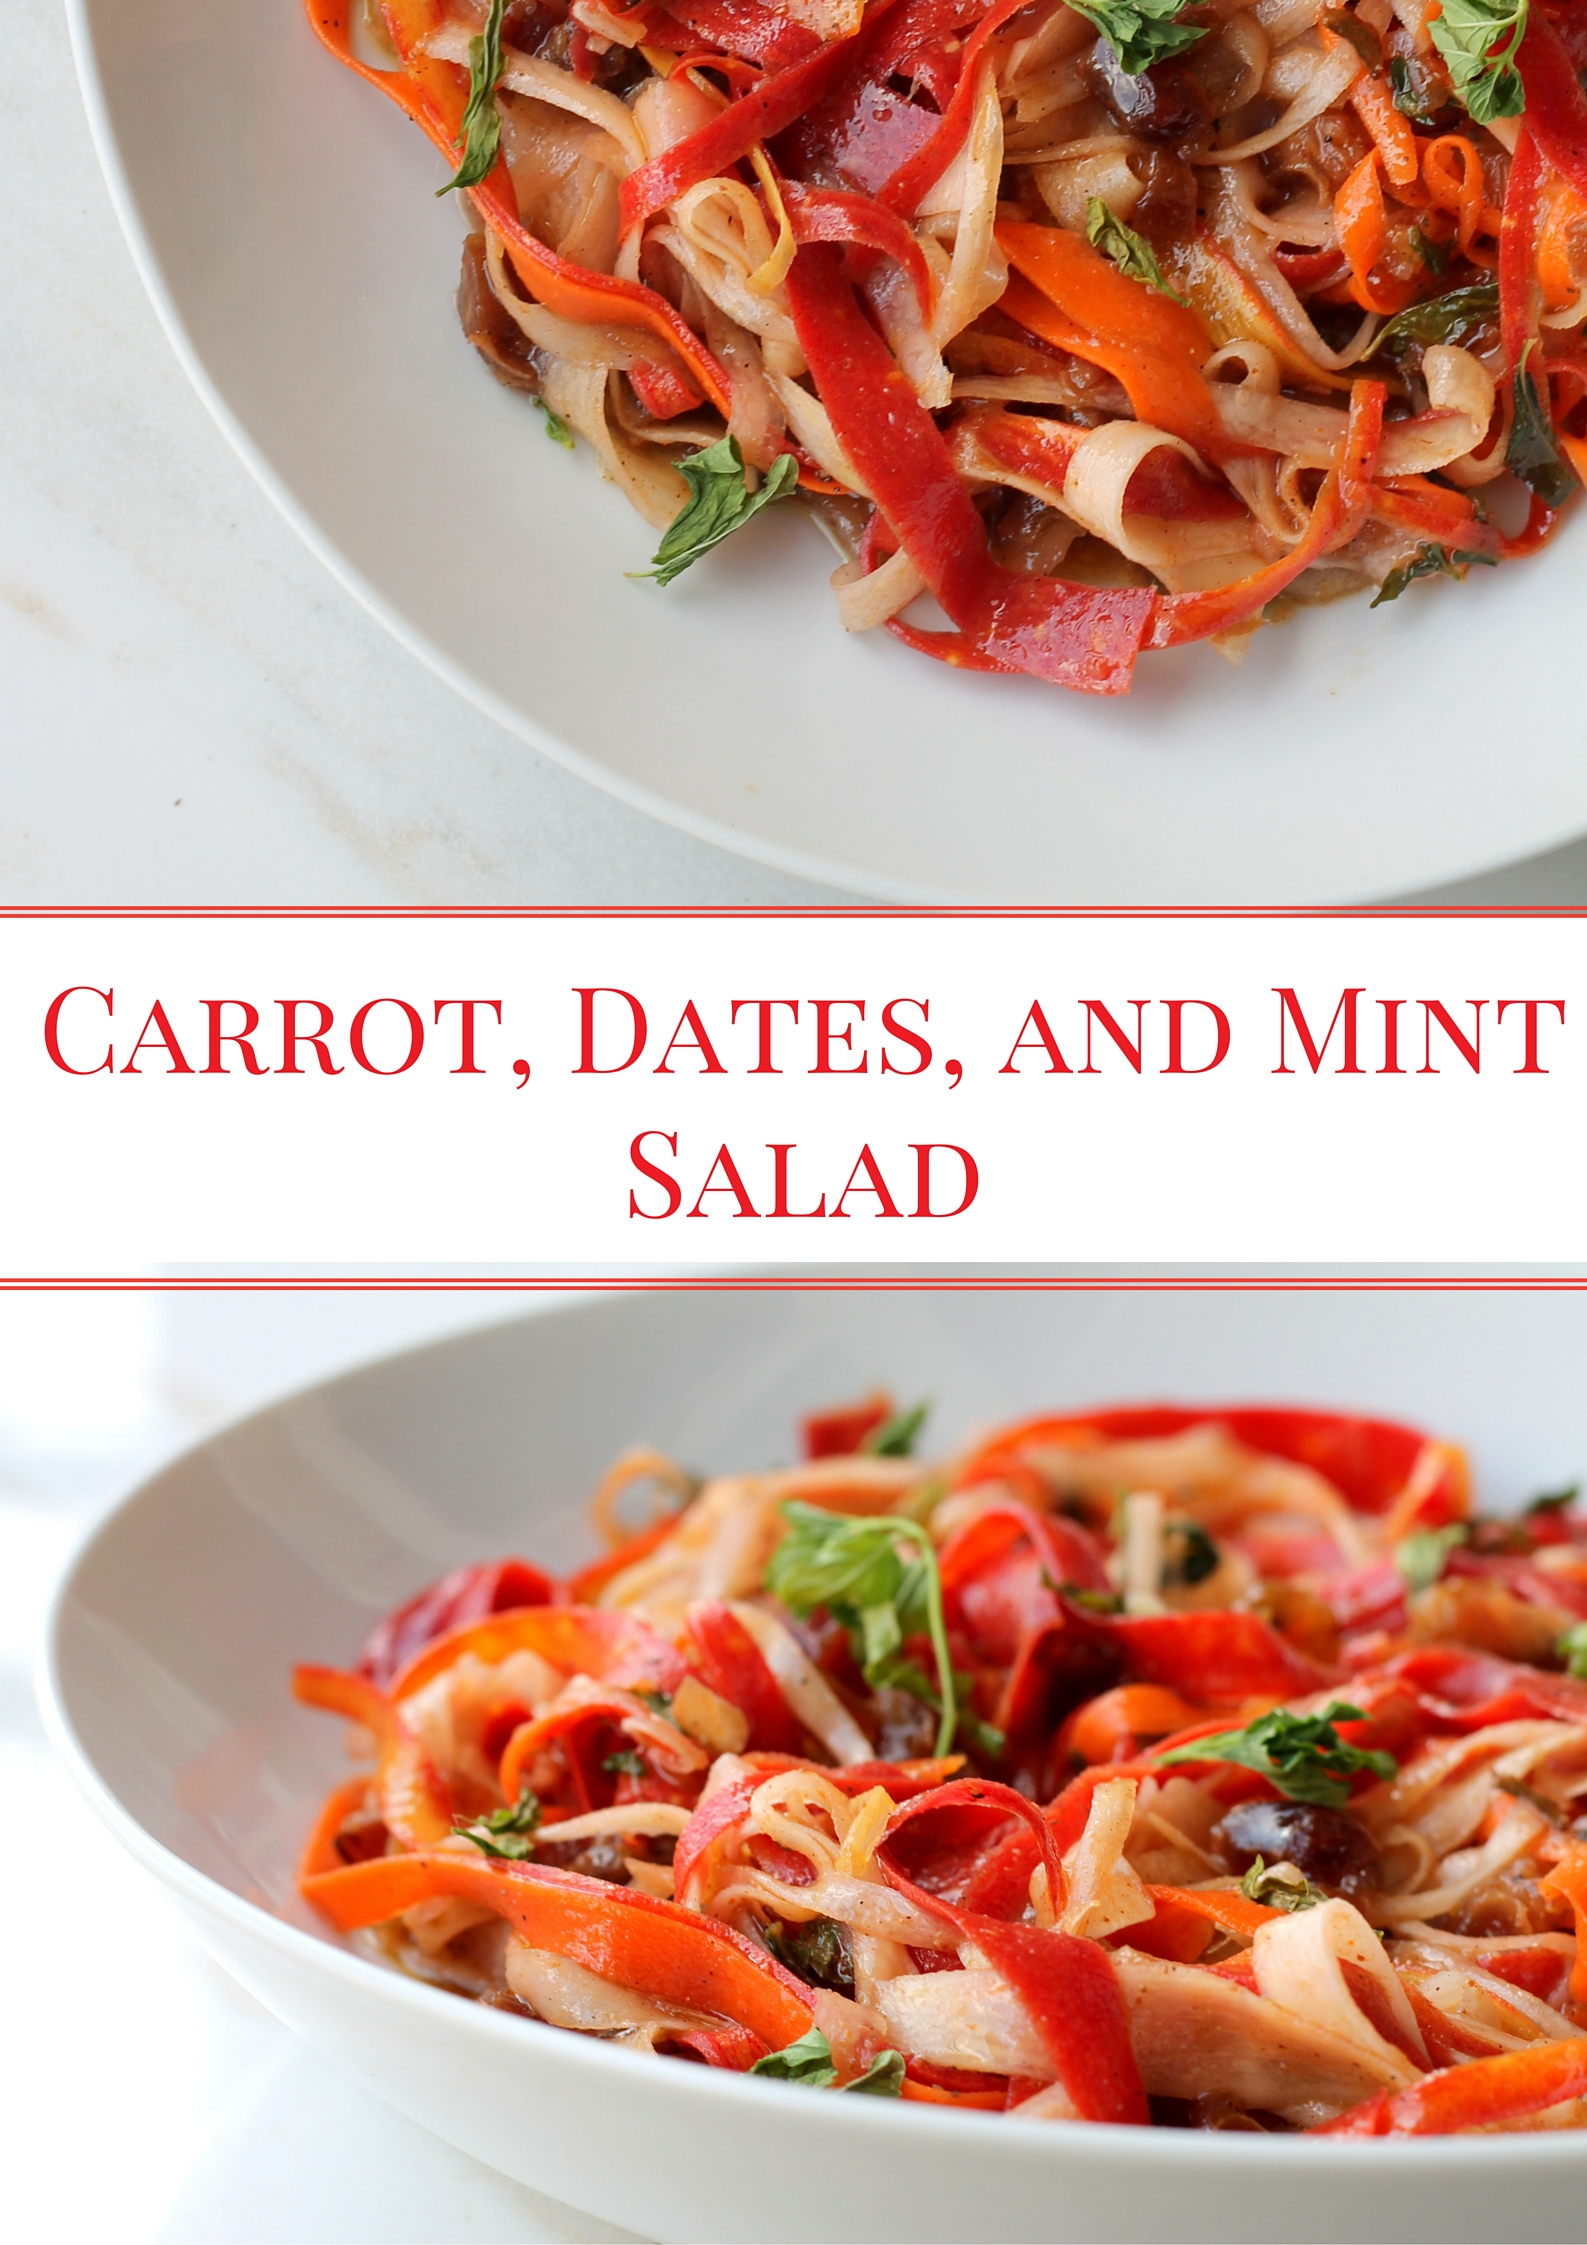 Carrot, Dates, and Mint Salad